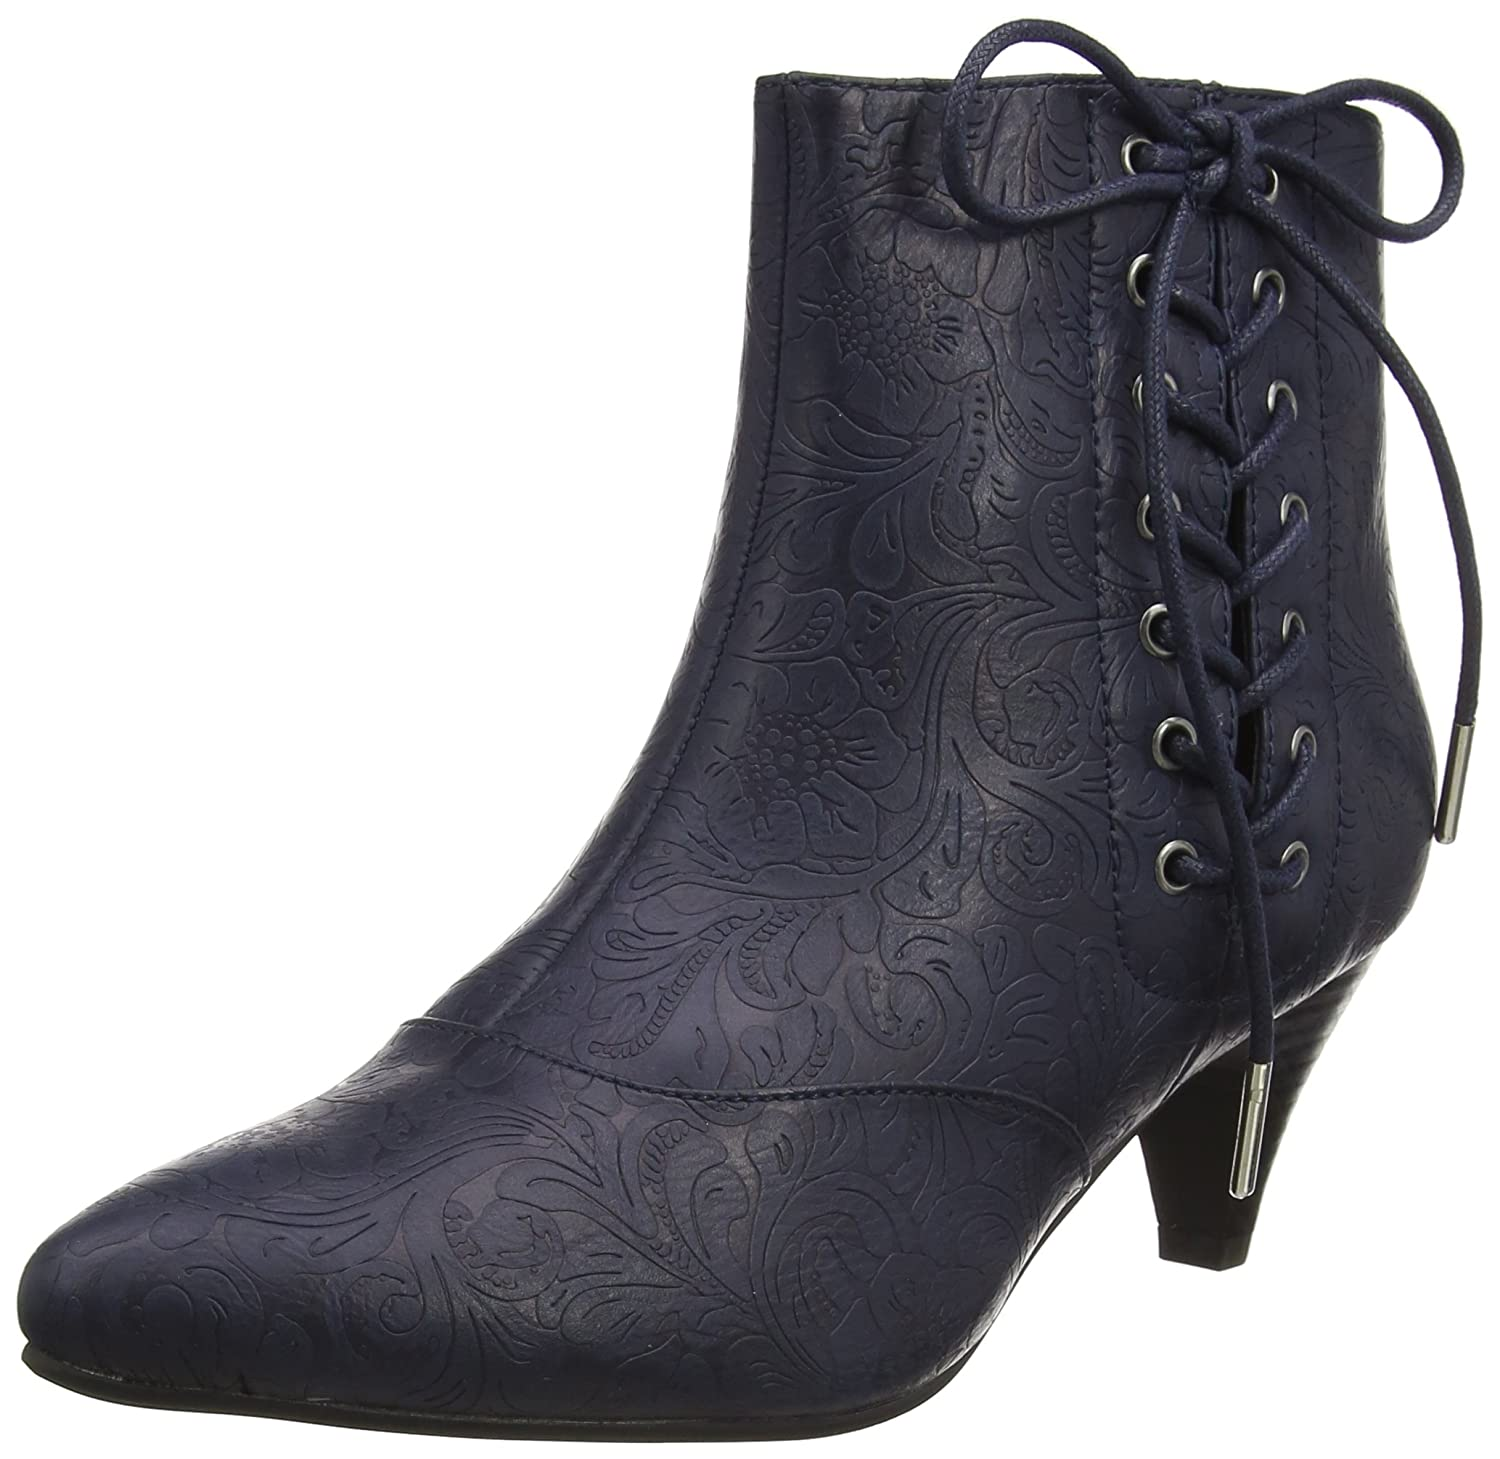 Blau (Midnight A) Joe brauns Damen Mystical Side Lace Ankle Stiefel Stiefel